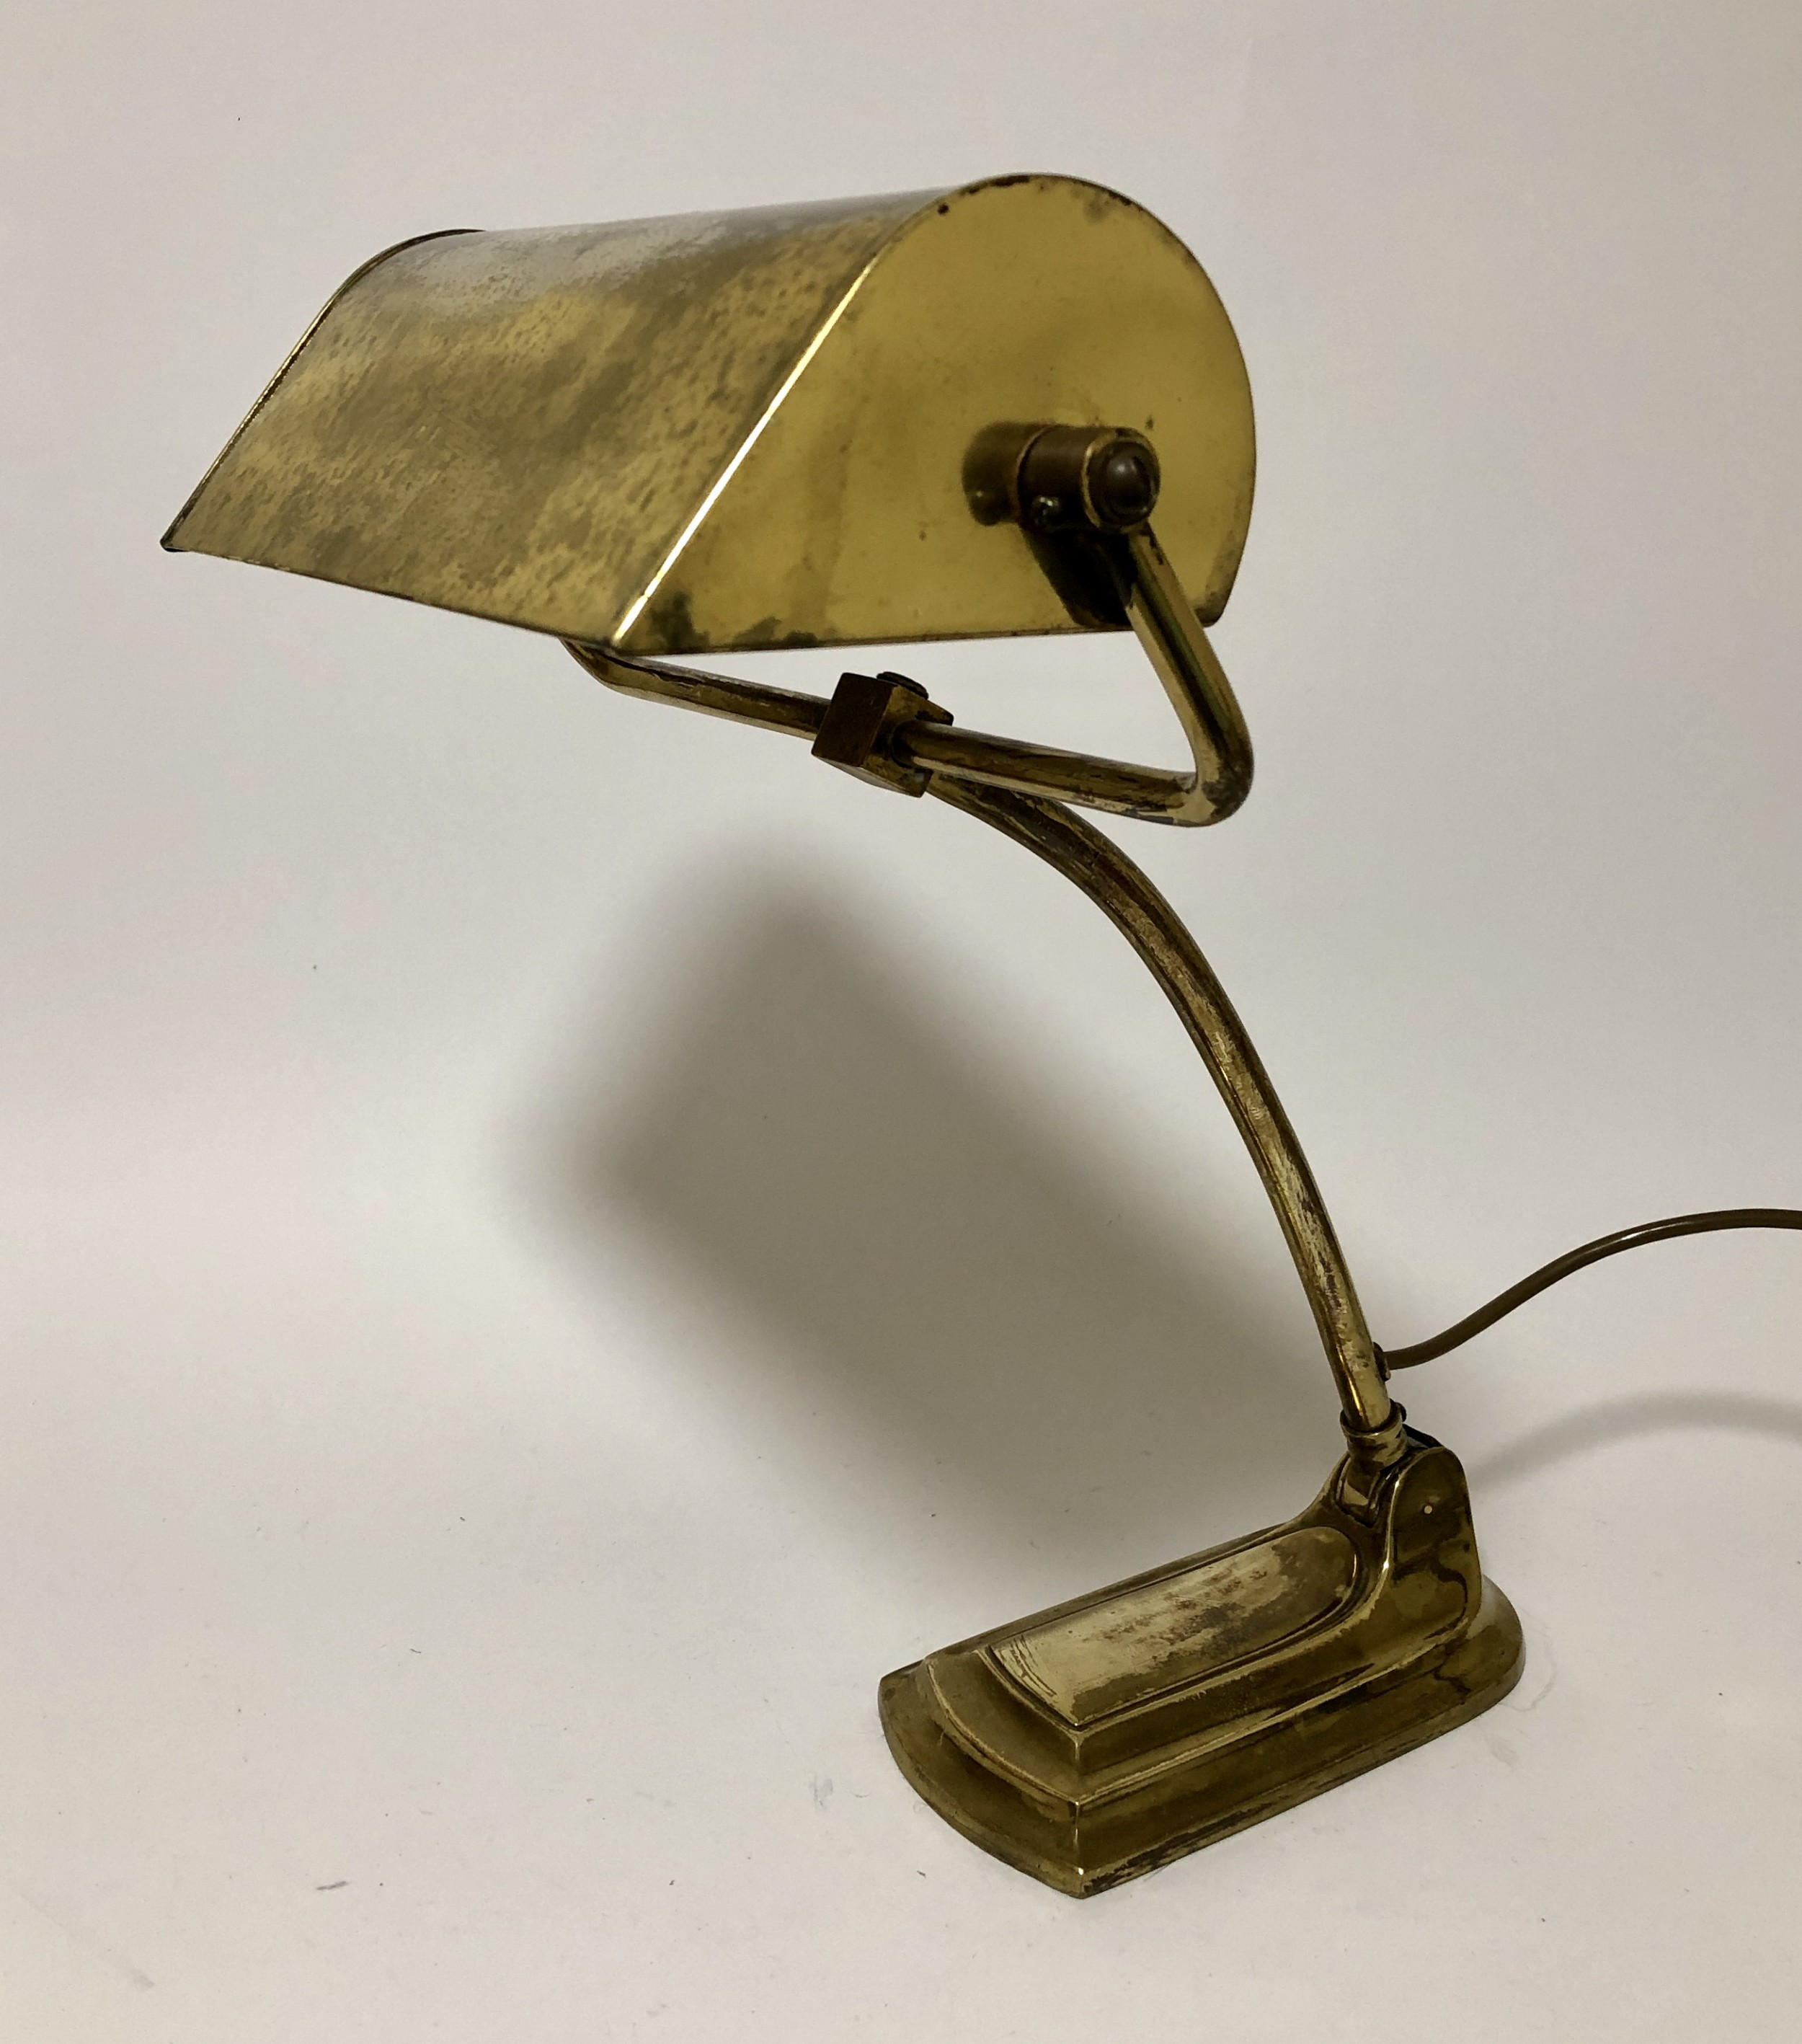 Pleasant Antique Vintage Art Deco Adjustable Brass Desk Lamp 595706 Download Free Architecture Designs Xaembritishbridgeorg